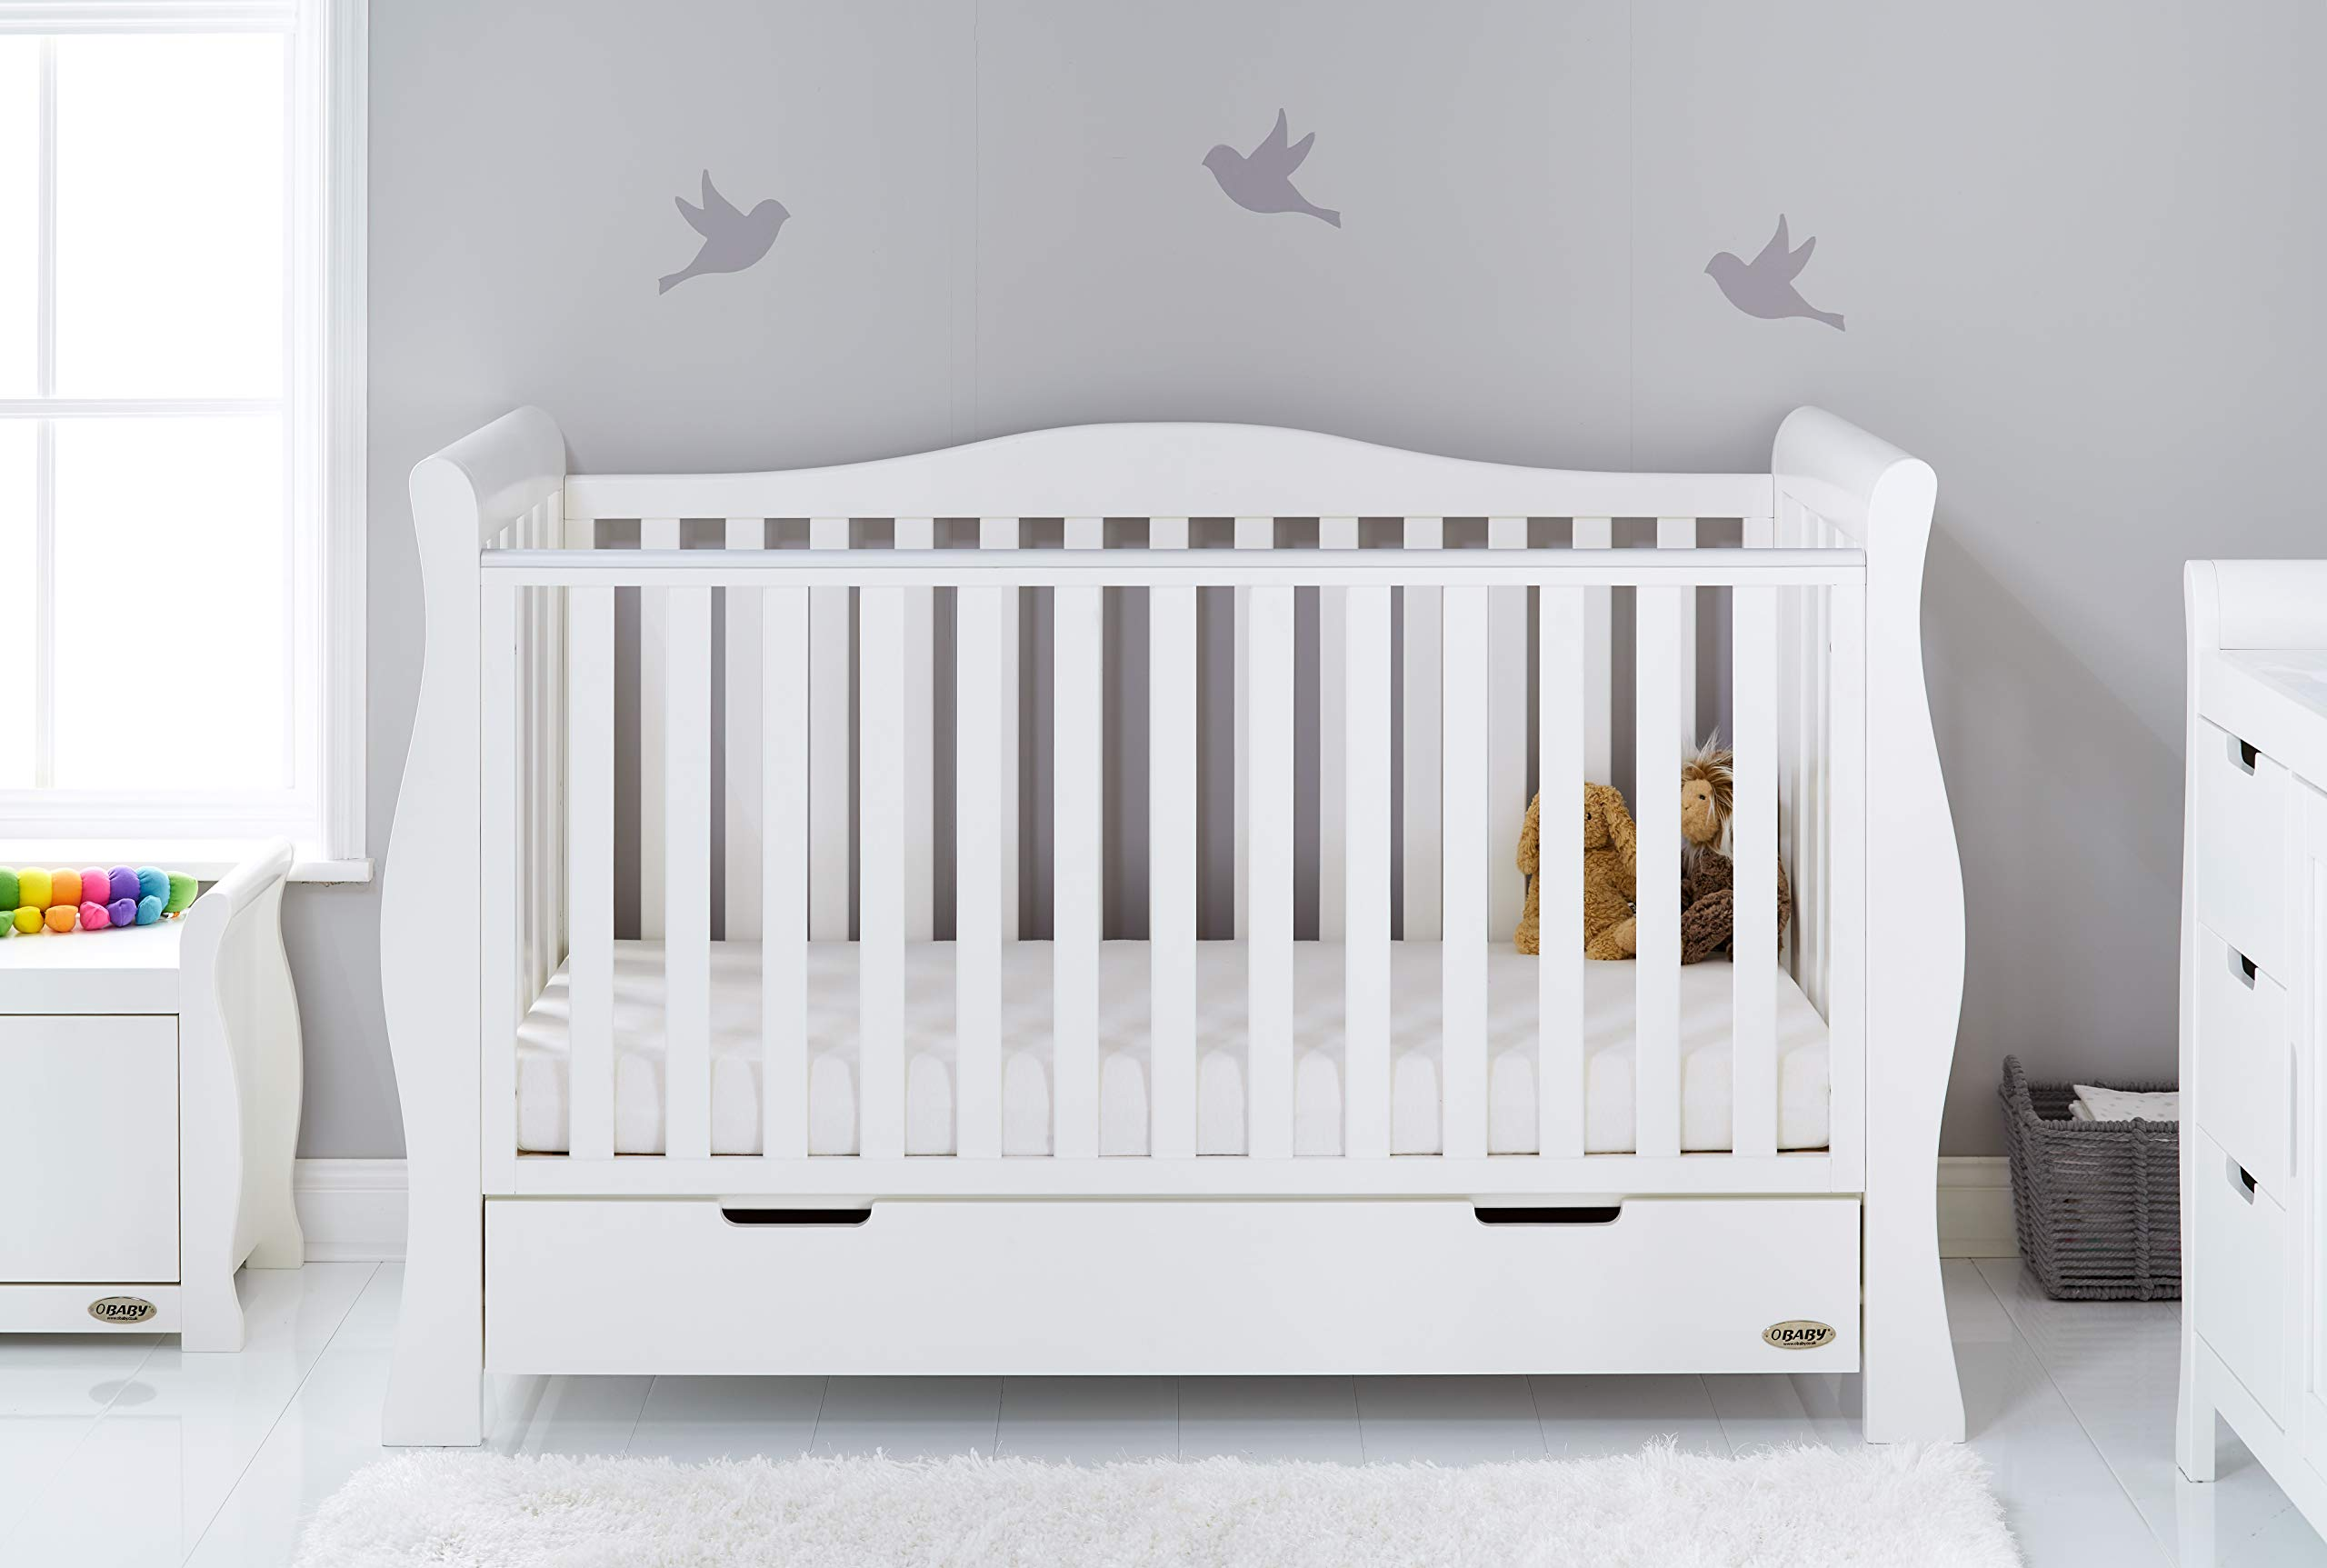 Obaby Stamford Sleigh Luxe Cot Bed - White Obaby Adjustable 3 position mattress height Bed ends split to transforms into toddler bed Includes matching under drawer for storage 1